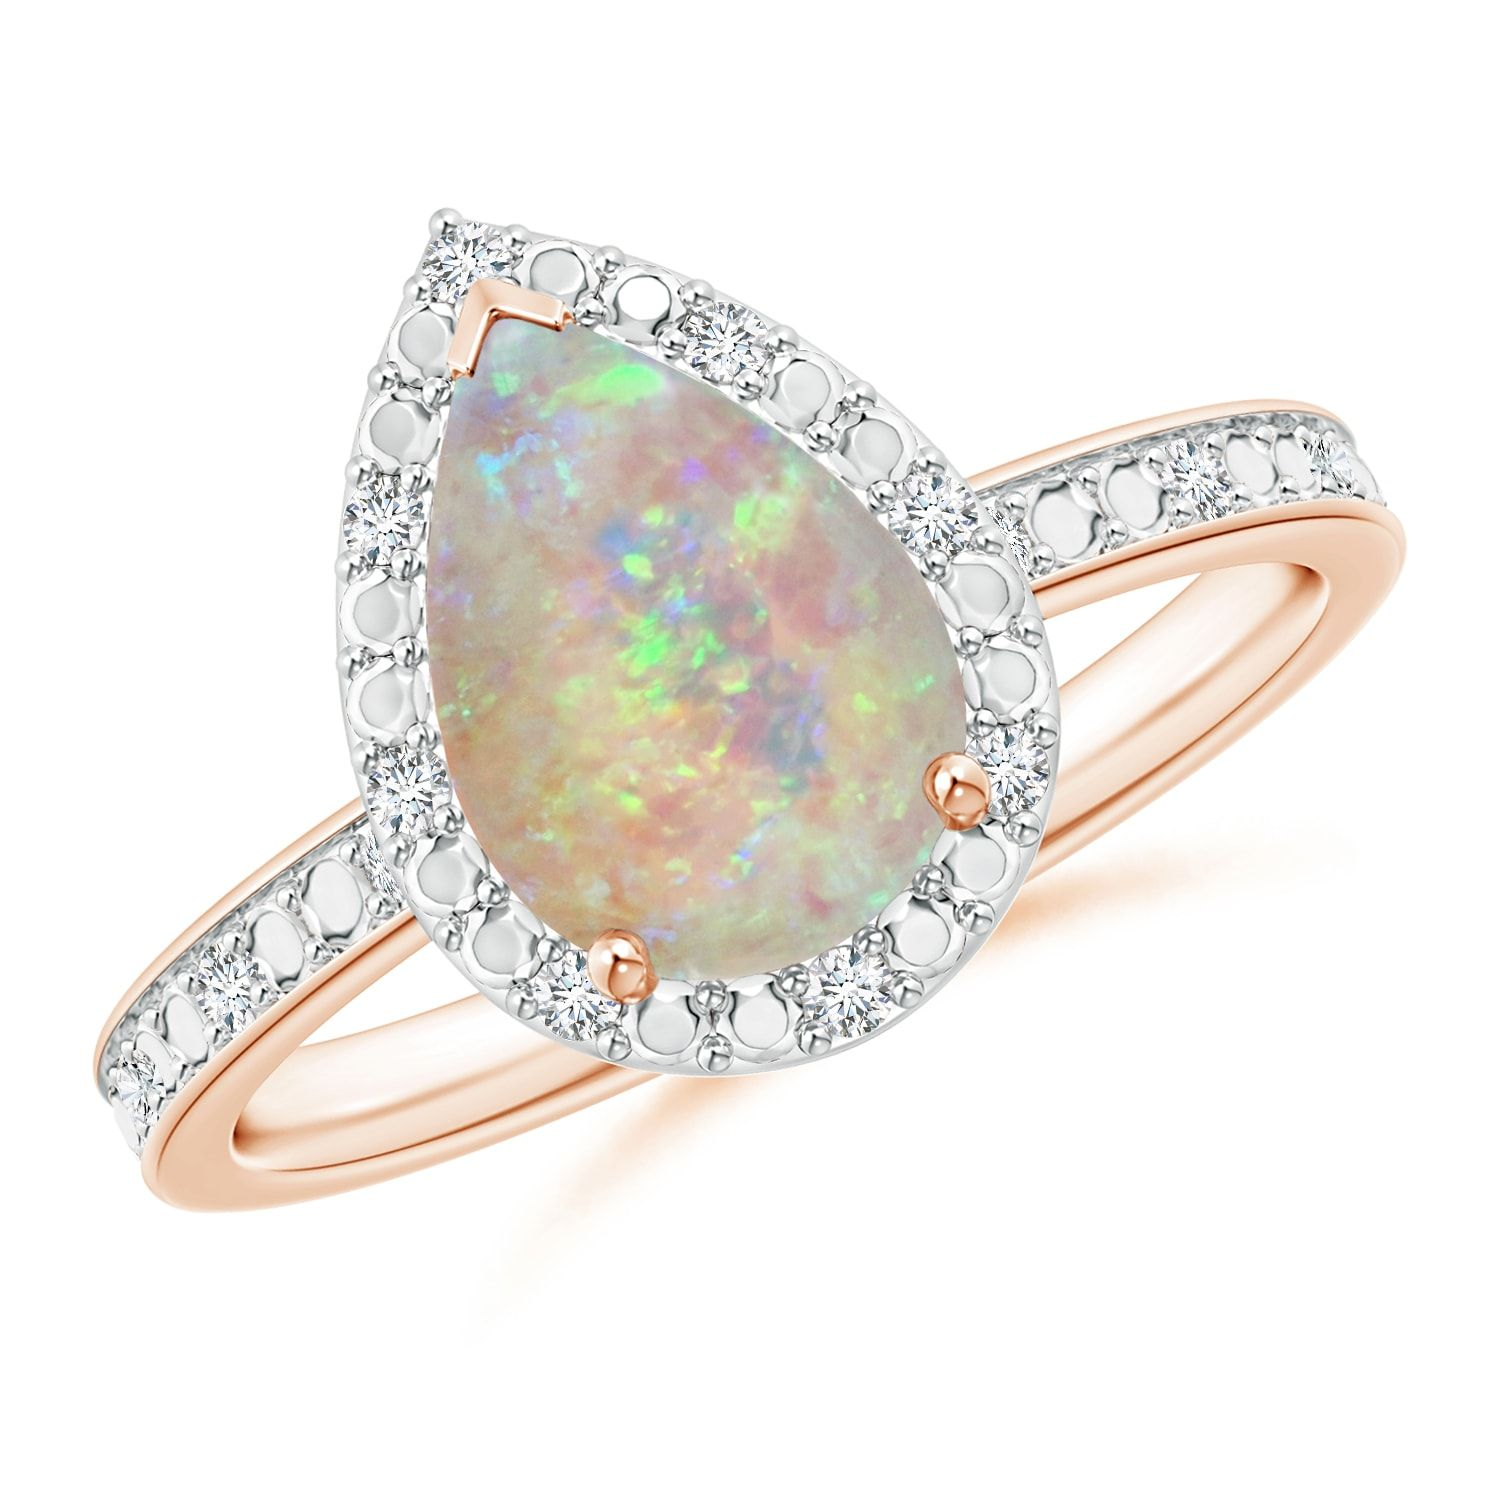 Prong Set Pear Shaped Opal Ring With Diamond Halo White Gold Opal Ring Opal Rings Yellow Gold Opal Ring